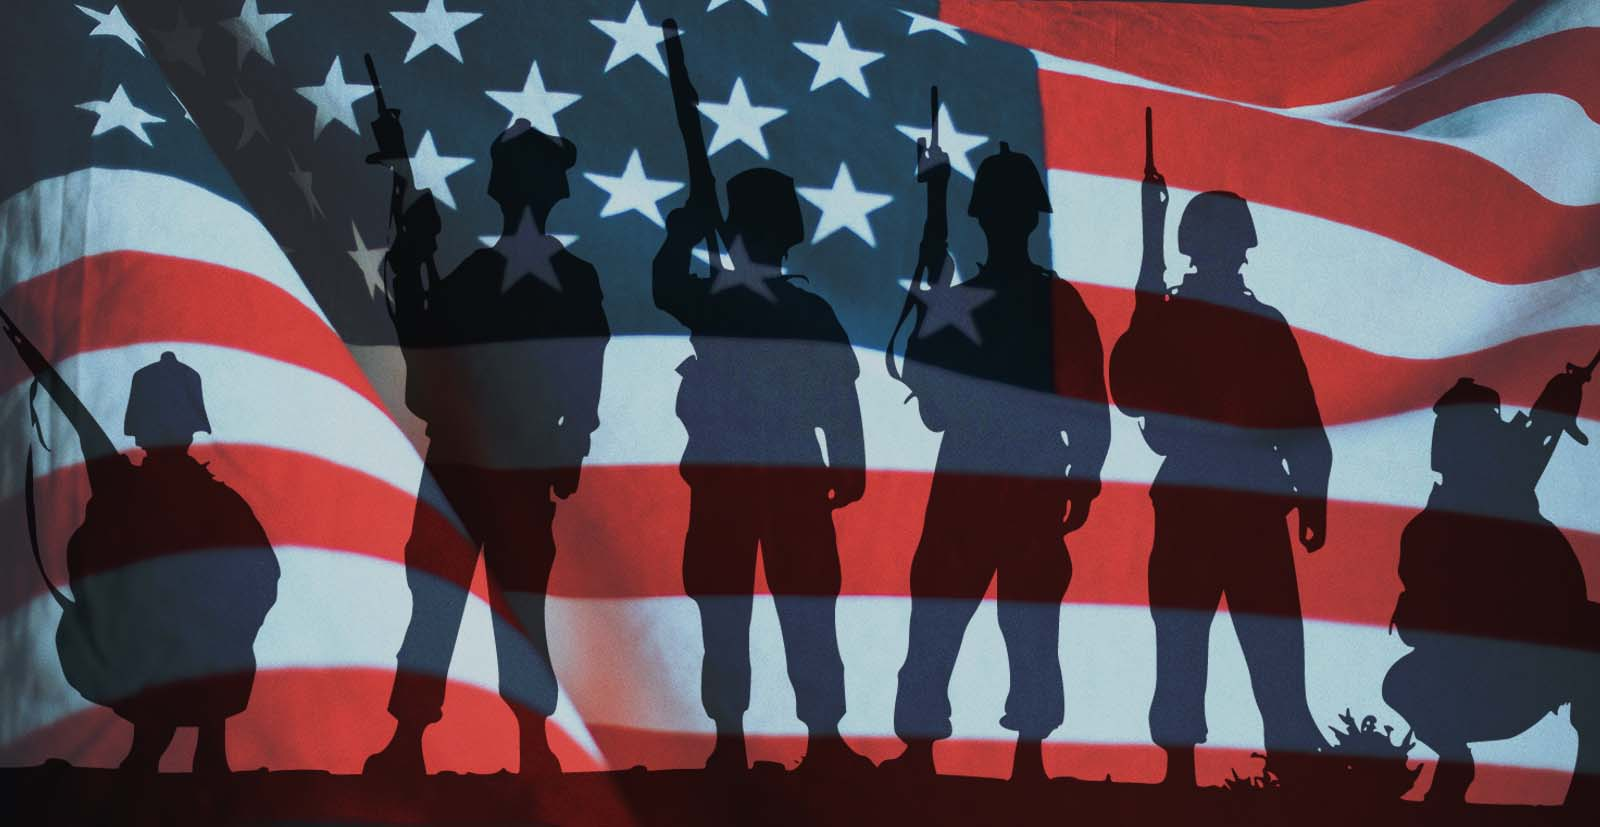 PFL Announces Philanthropic Commitment to Empowering Youth and Supporting Active Duty Military, Veterans